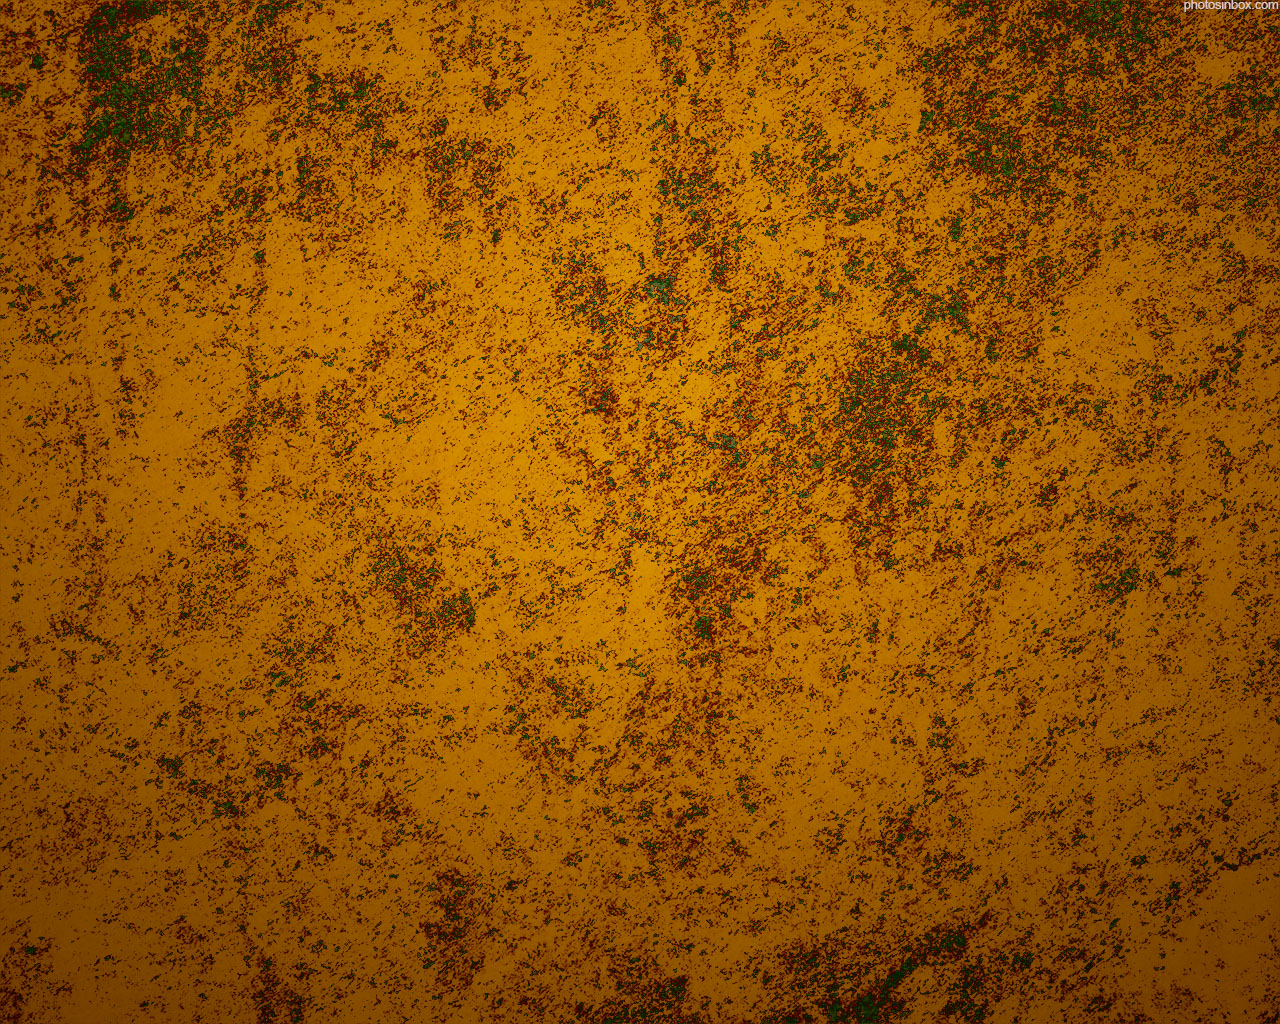 Enlarge Background 1280x1024px Rusty metal background 1280x1024